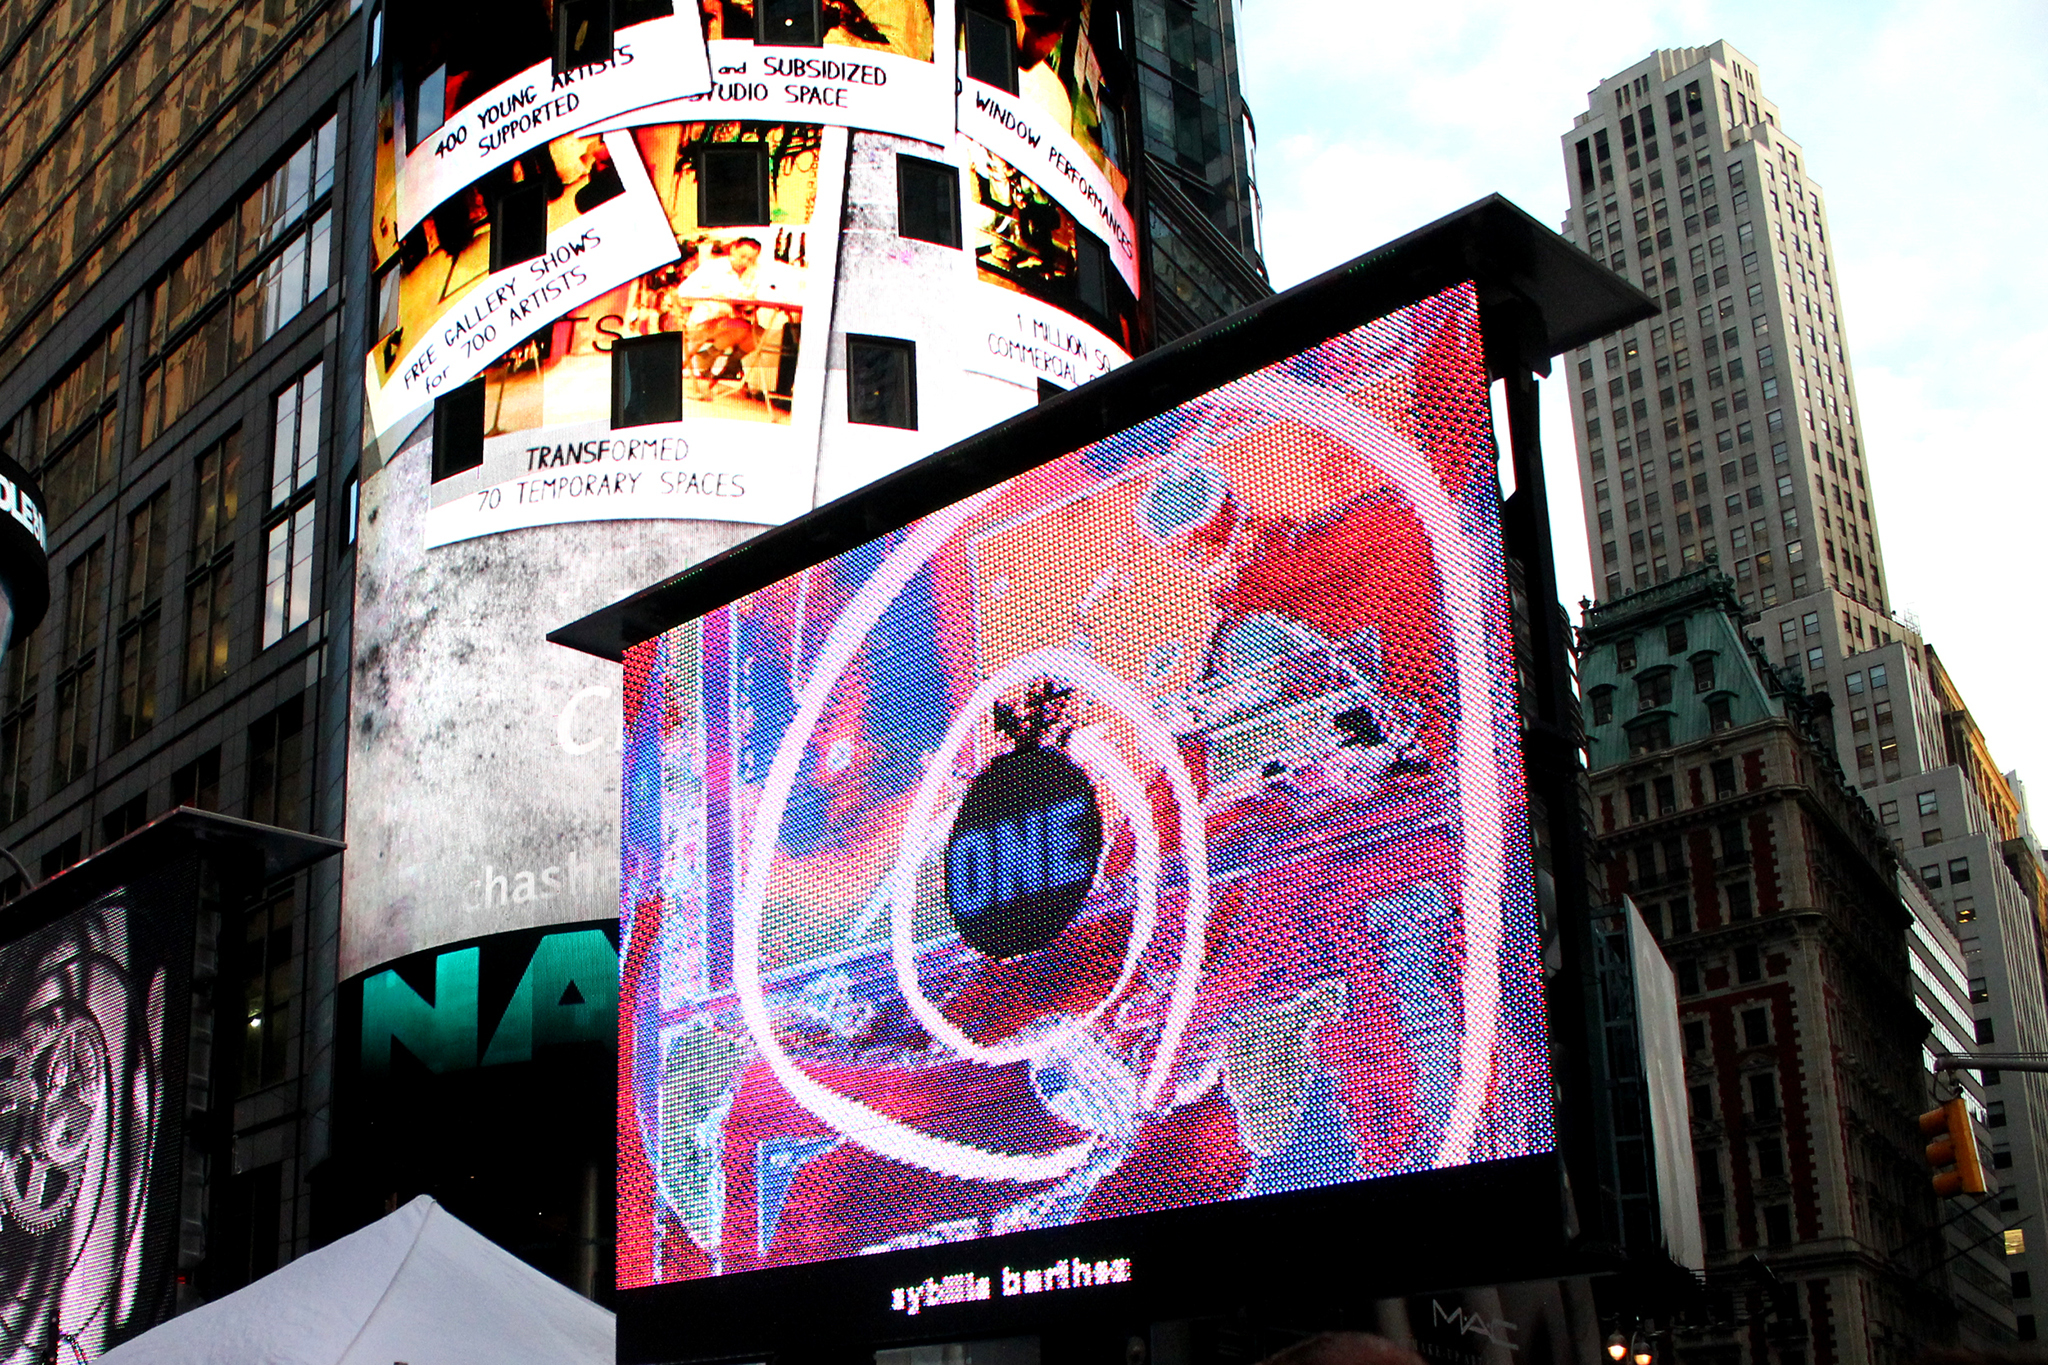 Art Takes Times Square by Chashama and Artists Wanted